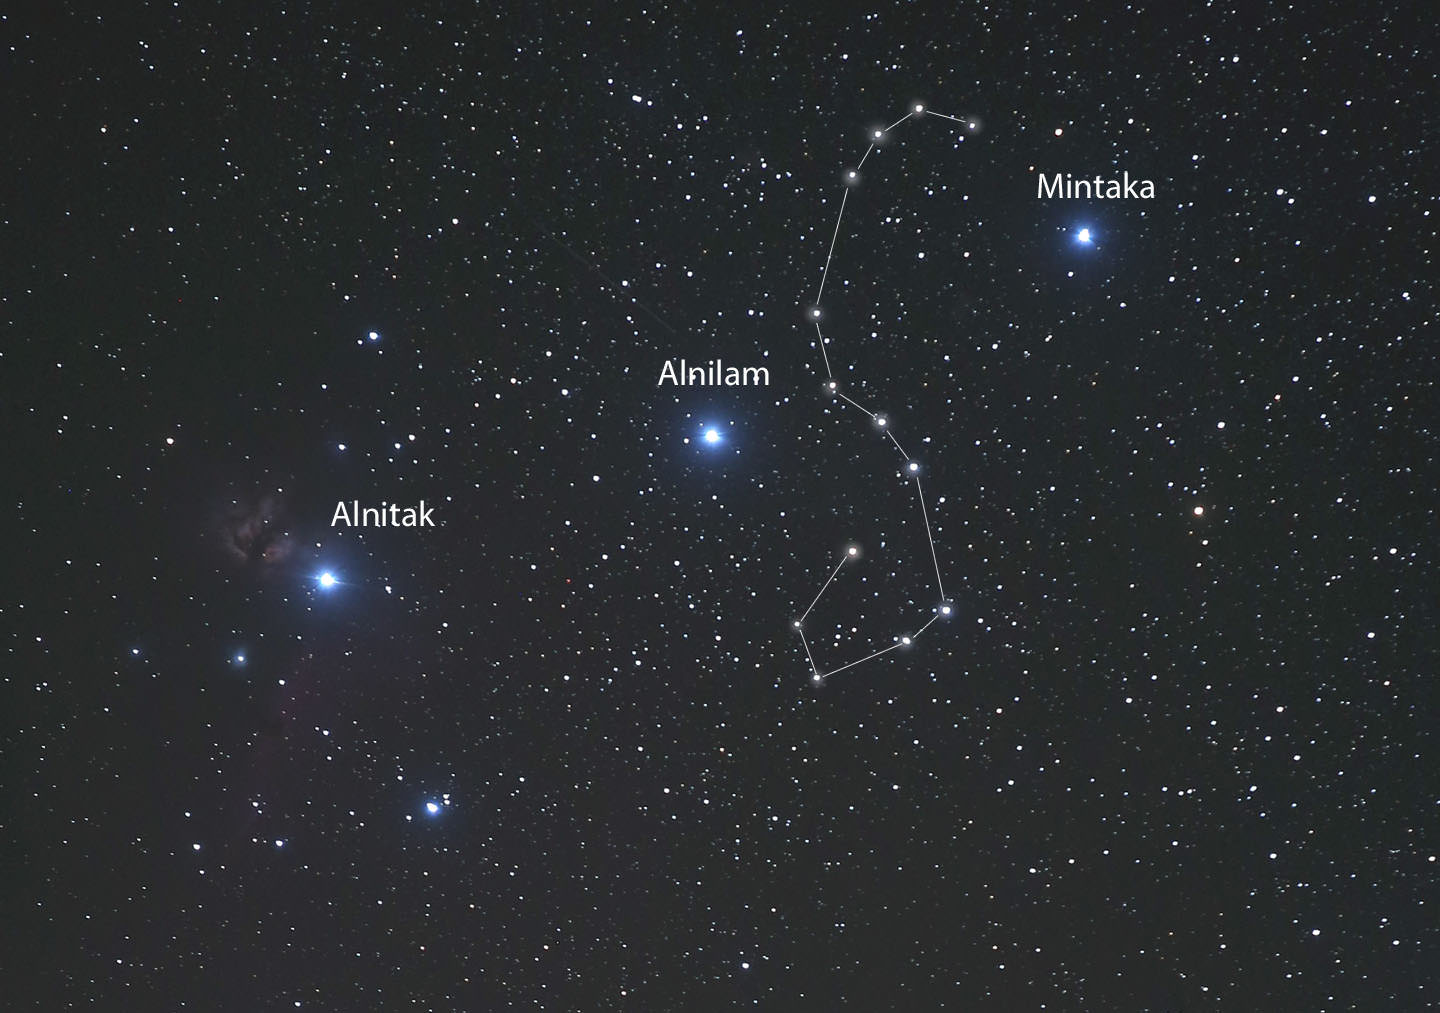 orion's belt Archives - Universe Today